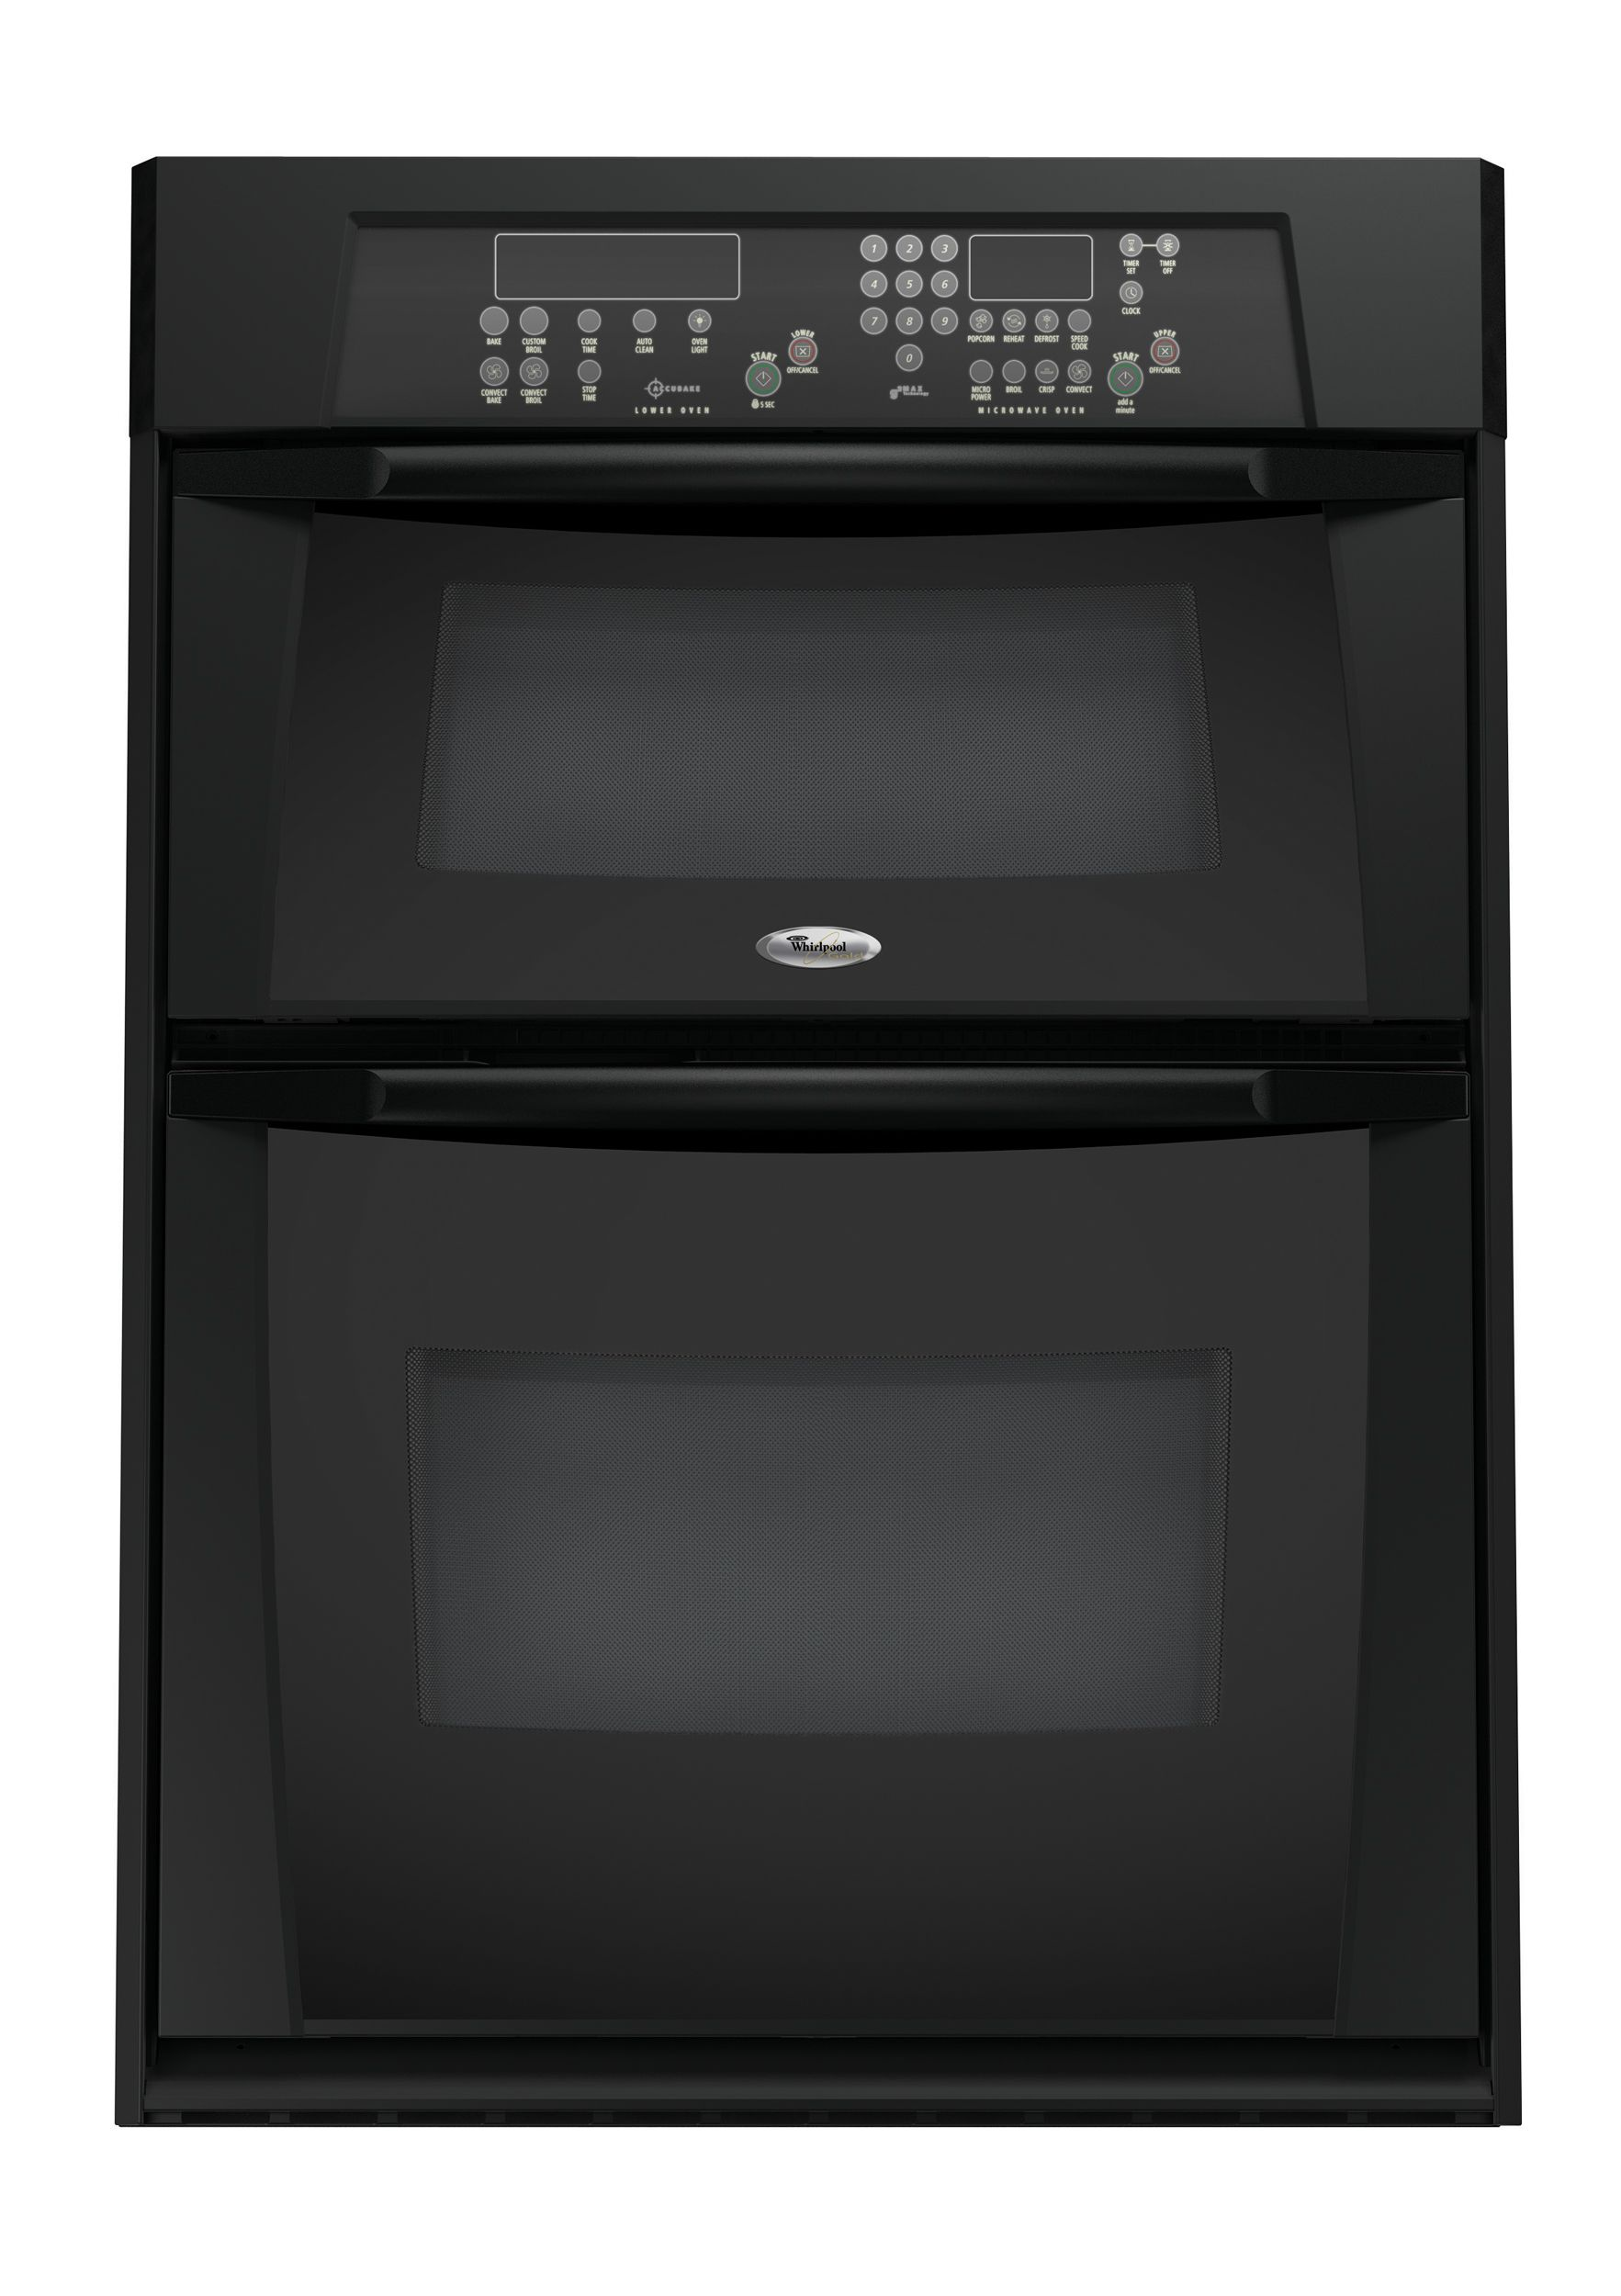 Whirlpool Gold Electric Combination Wall Oven 30 Inches Gsc308pr - Sears